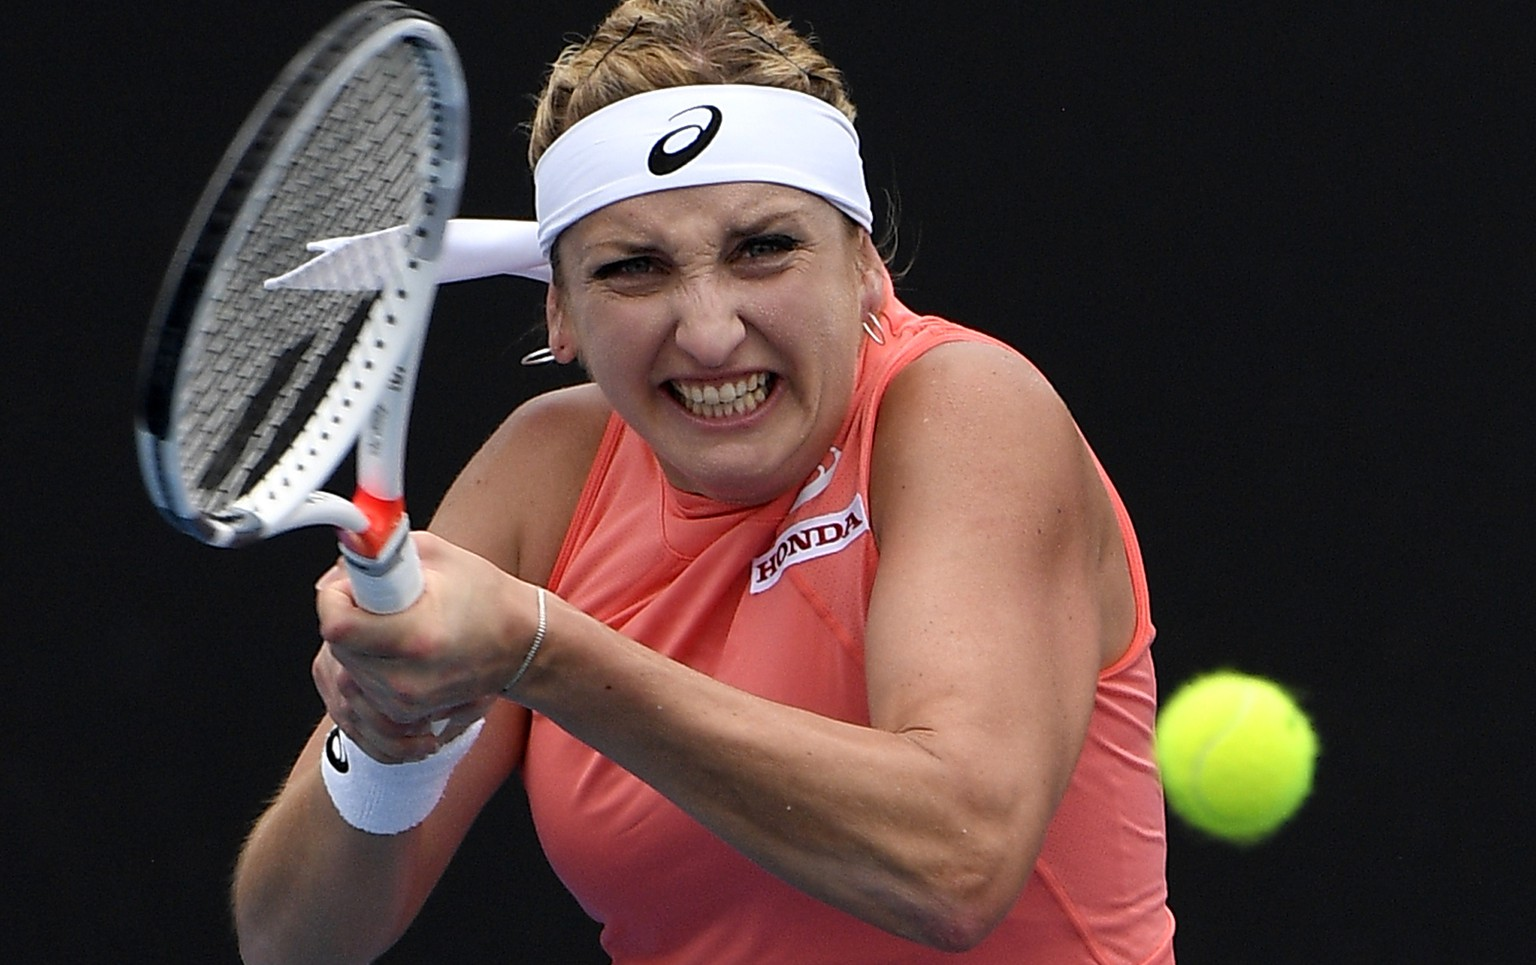 Switzerland's Timea Bacsinszky makes a backhand return to Russia's Daria Kasatkina against during their first round match at the Australian Open tennis championships in Melbourne, Australia, Tuesday, Jan. 15, 2019. (AP Photo/Andy Brownbill)